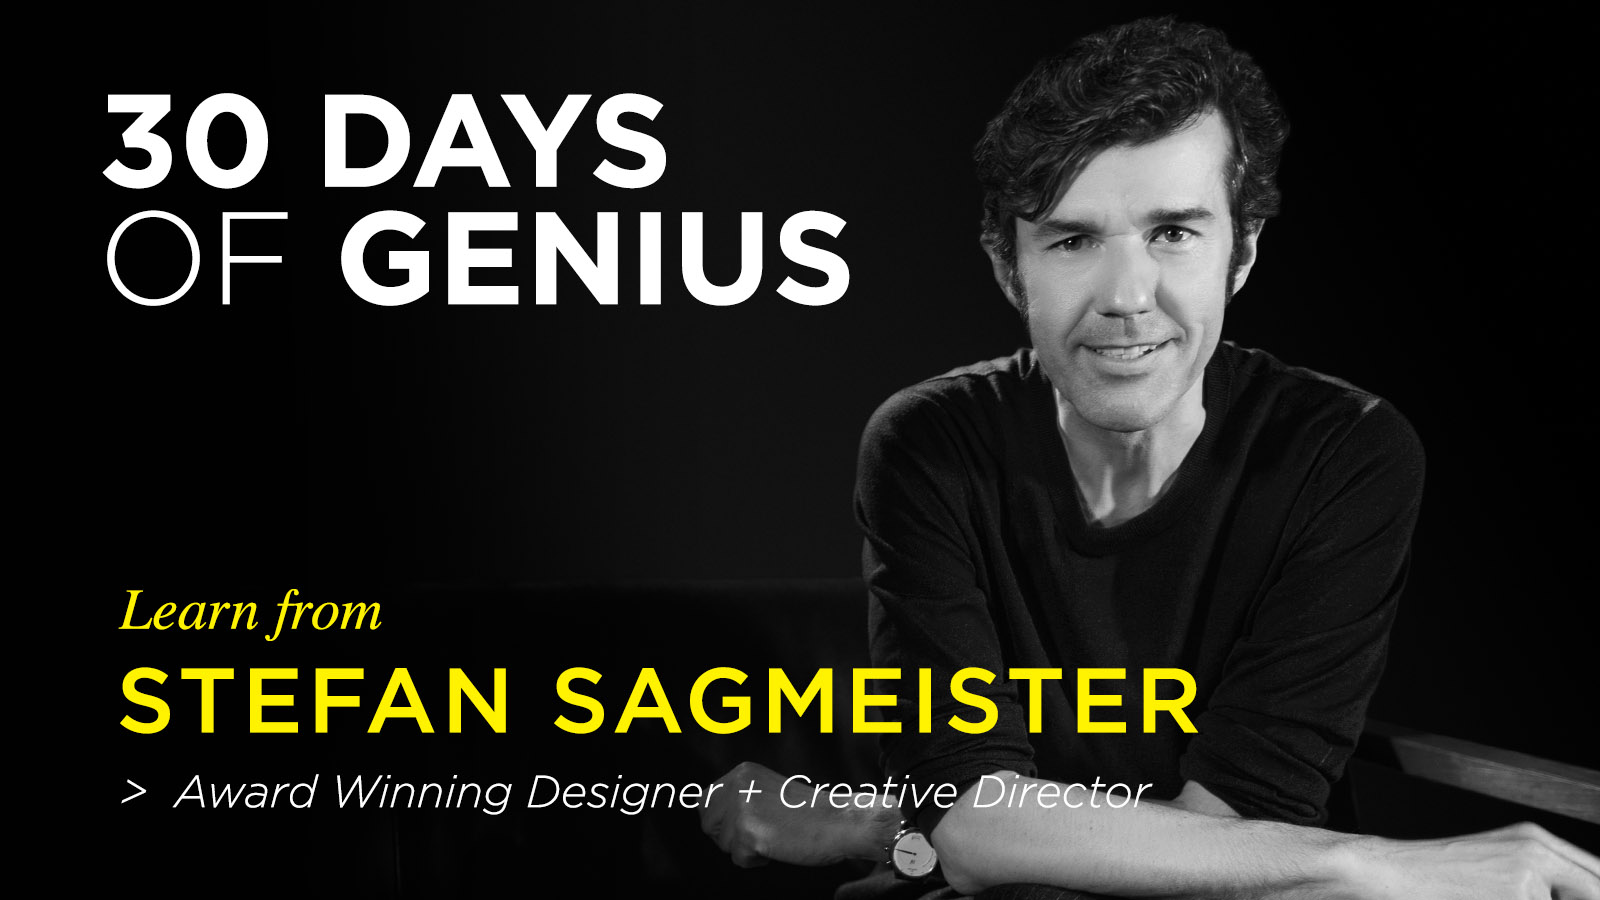 Stefan Sagmeister 30 Days of Genius Interview